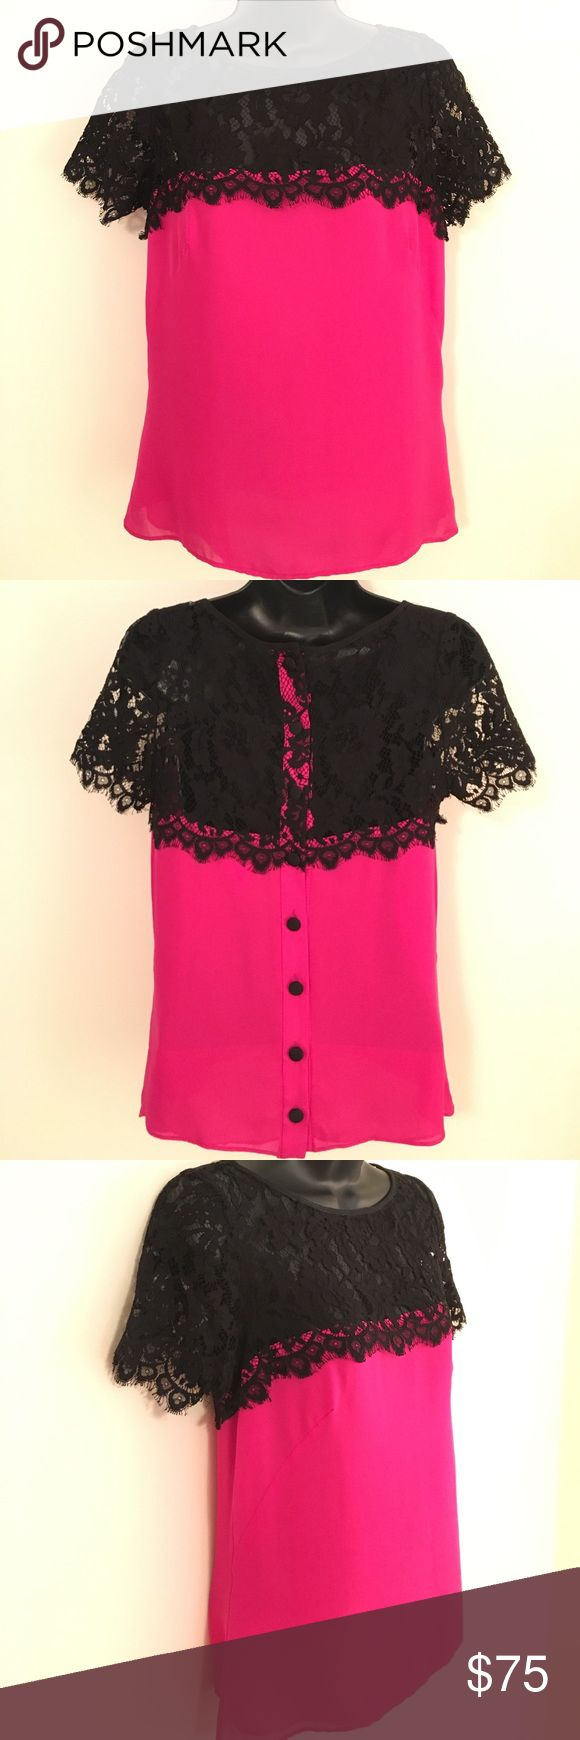 🌟MARK DOWN🌟 Milly Lace Blouse 🎀 Gorgeous Milly Hot Pink Blouse with Black Lace Detail. Black Covered Buttons Down the Back of the Blouse. 100% Silk. In Excellent Condition, LIKE NEW! Price is Negotiable! Milly Tops Blouses